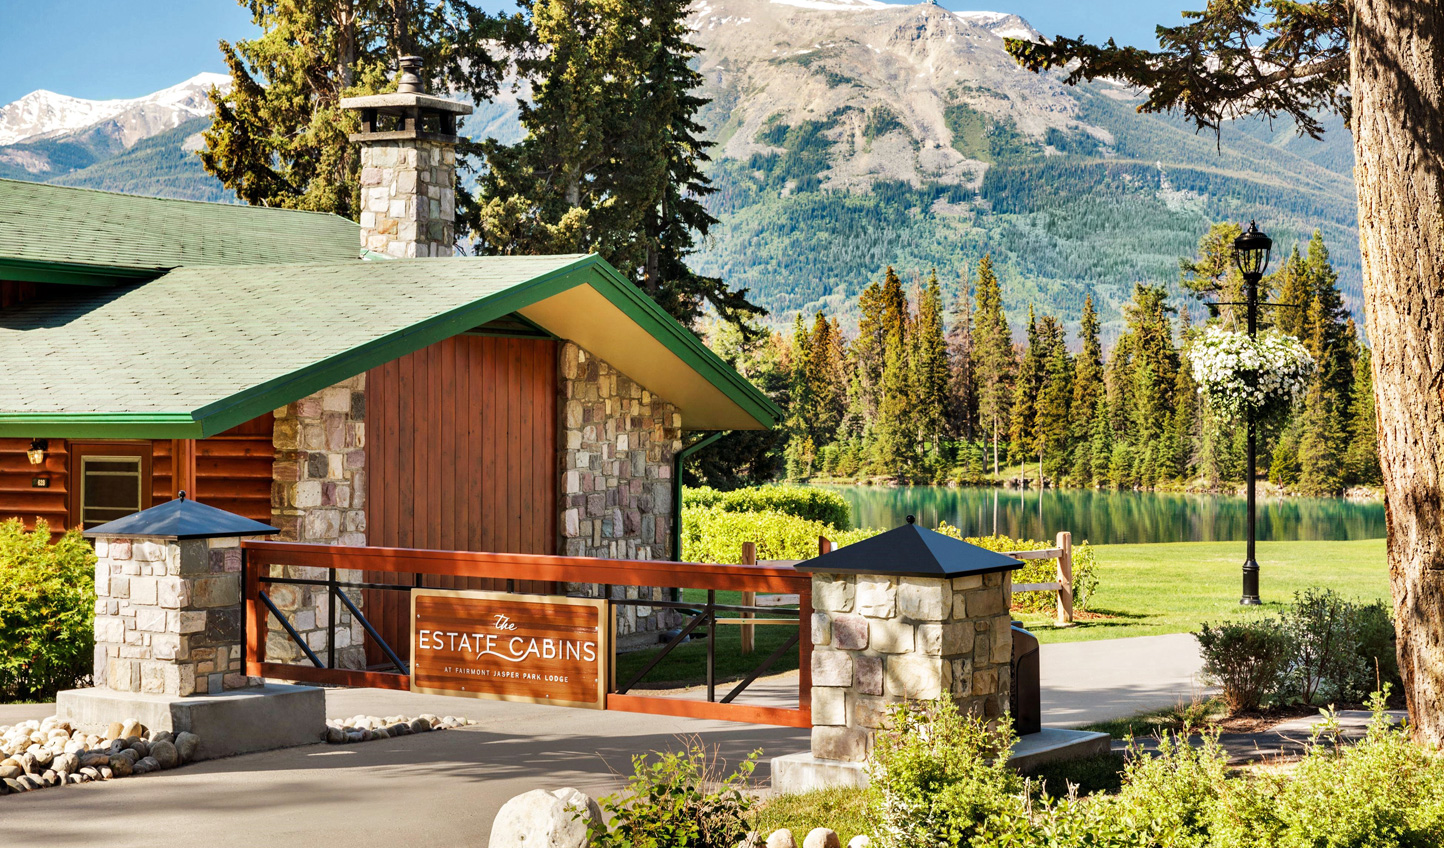 Discover your own quiet corner from which to explore Jasper